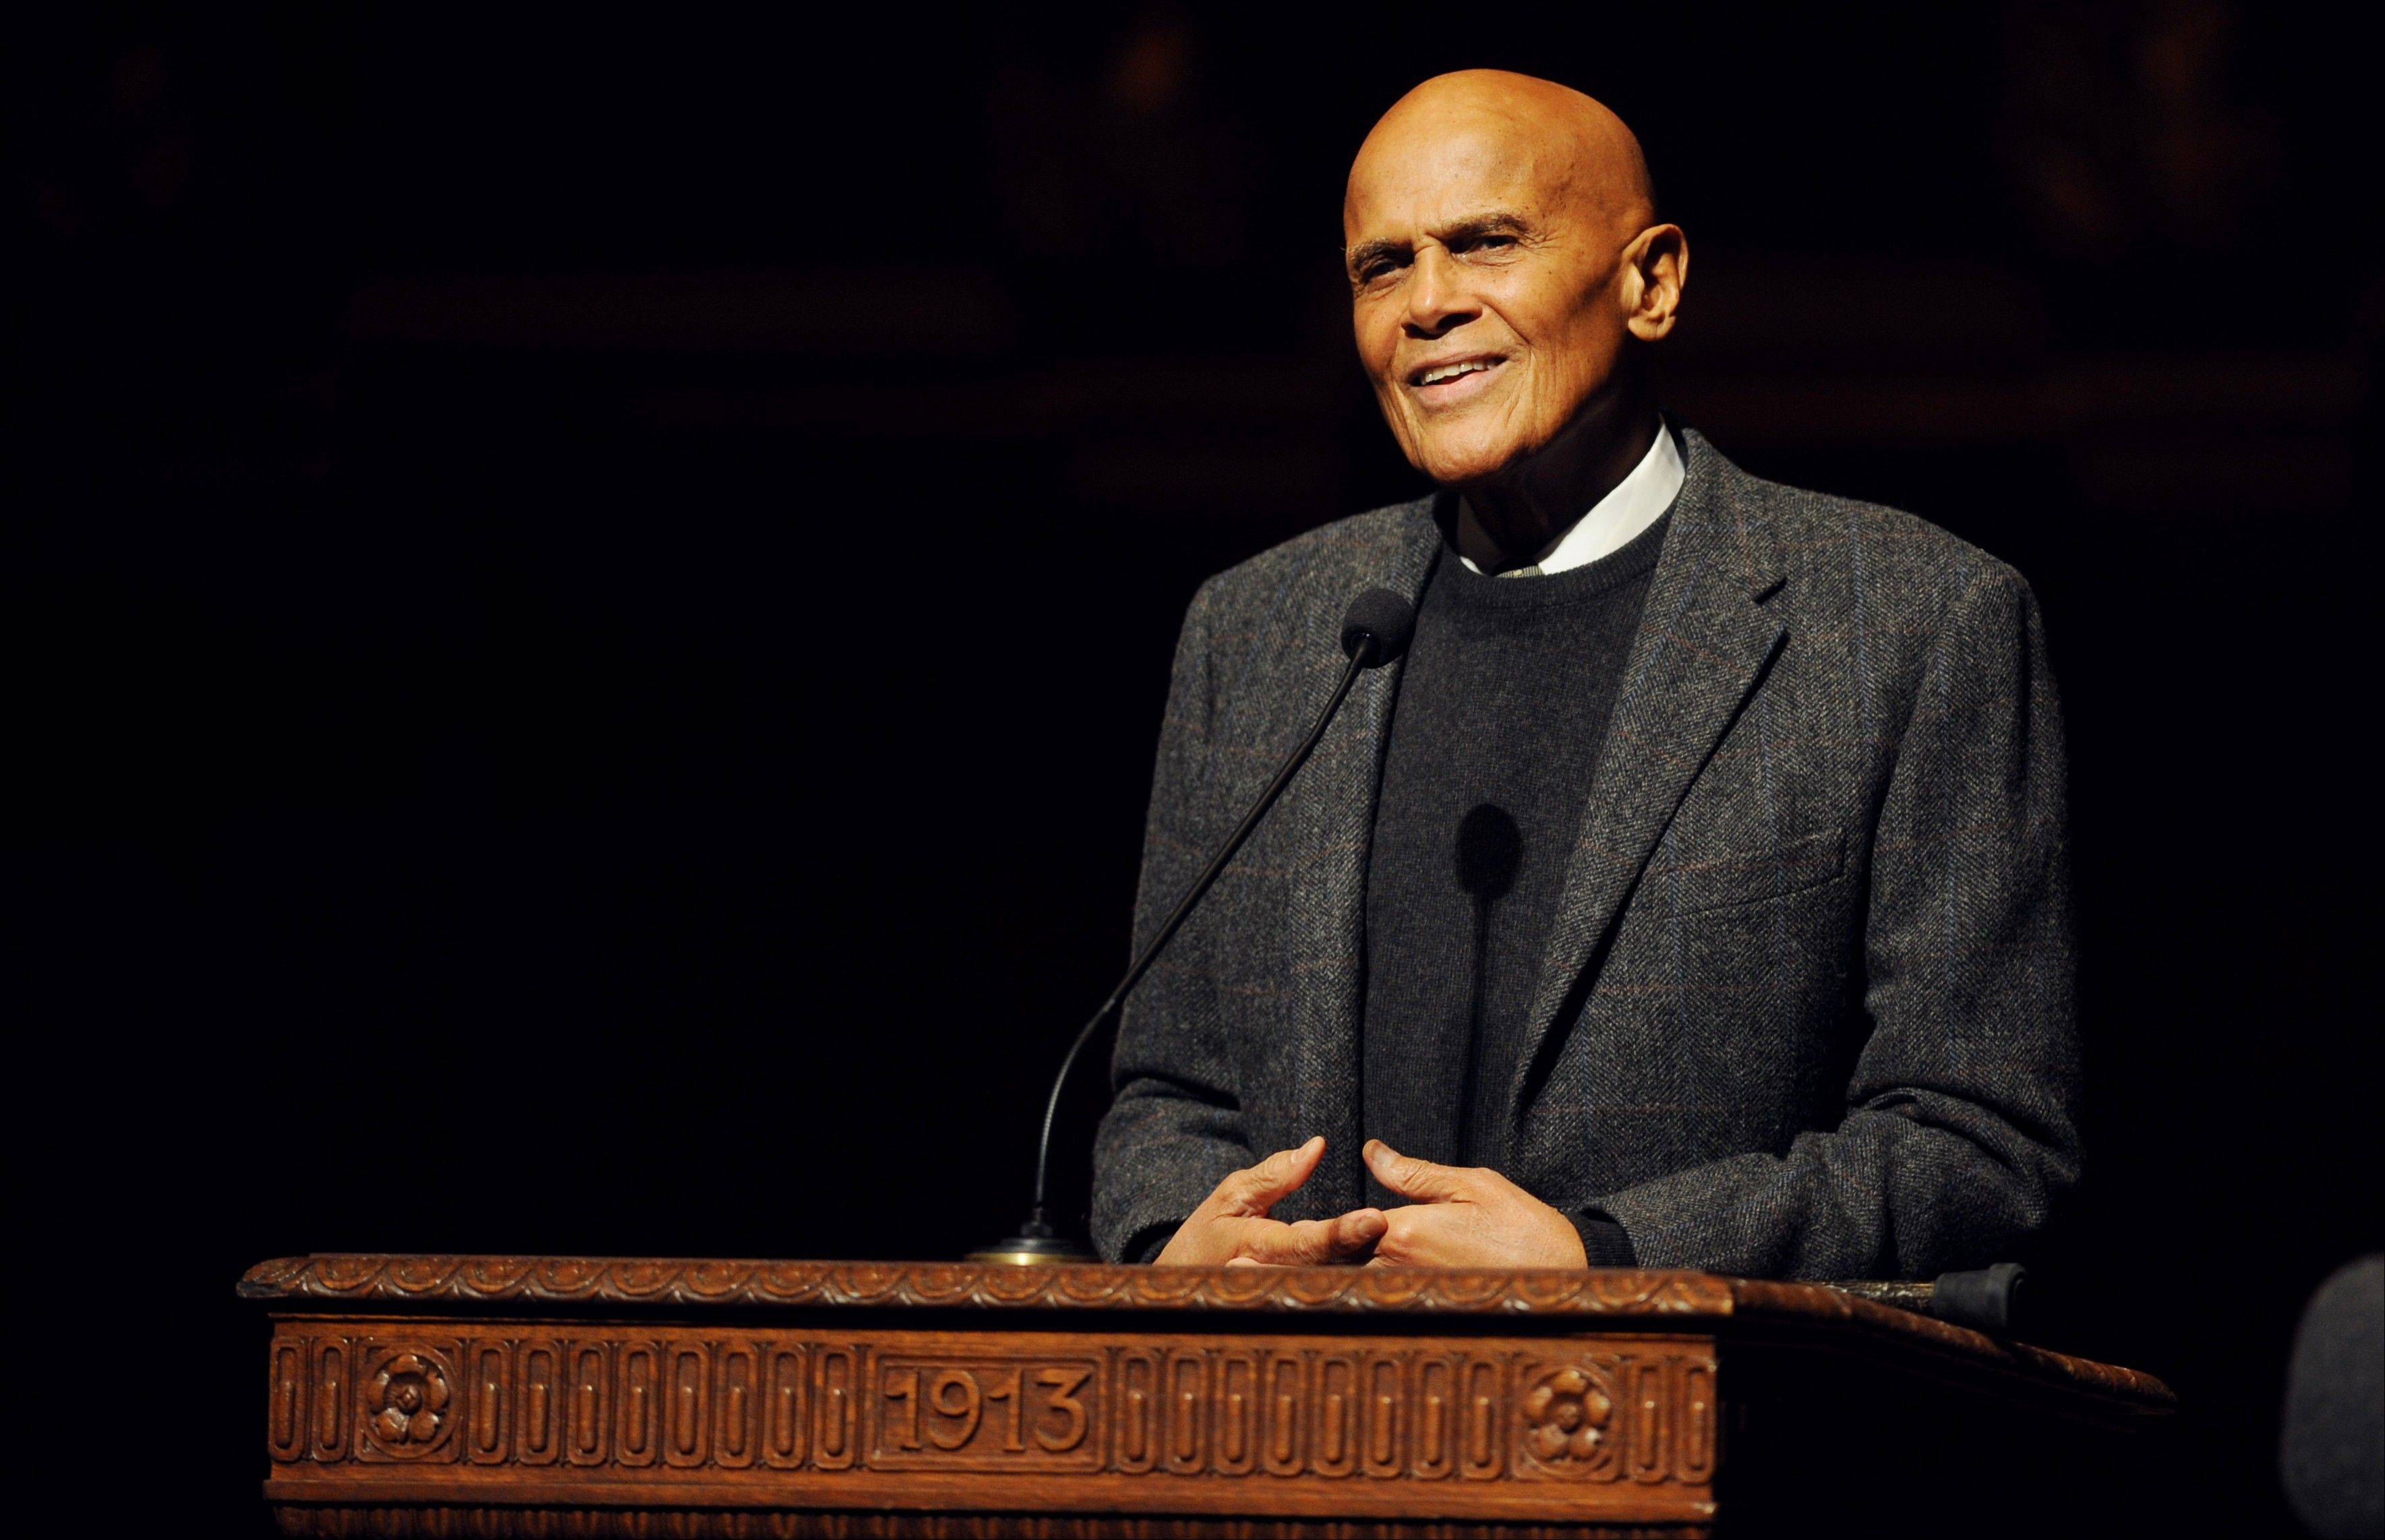 Activist and entertainer Harry Belafonte gives the keynote address for the Rev. Dr. Martin Luther King Jr. Symposium at Hill Auditorium on the University of Michigan campus in Ann Arbor, Mich., for Martin Luther King Jr. Day, on Monday, Jan. 20, 2014.